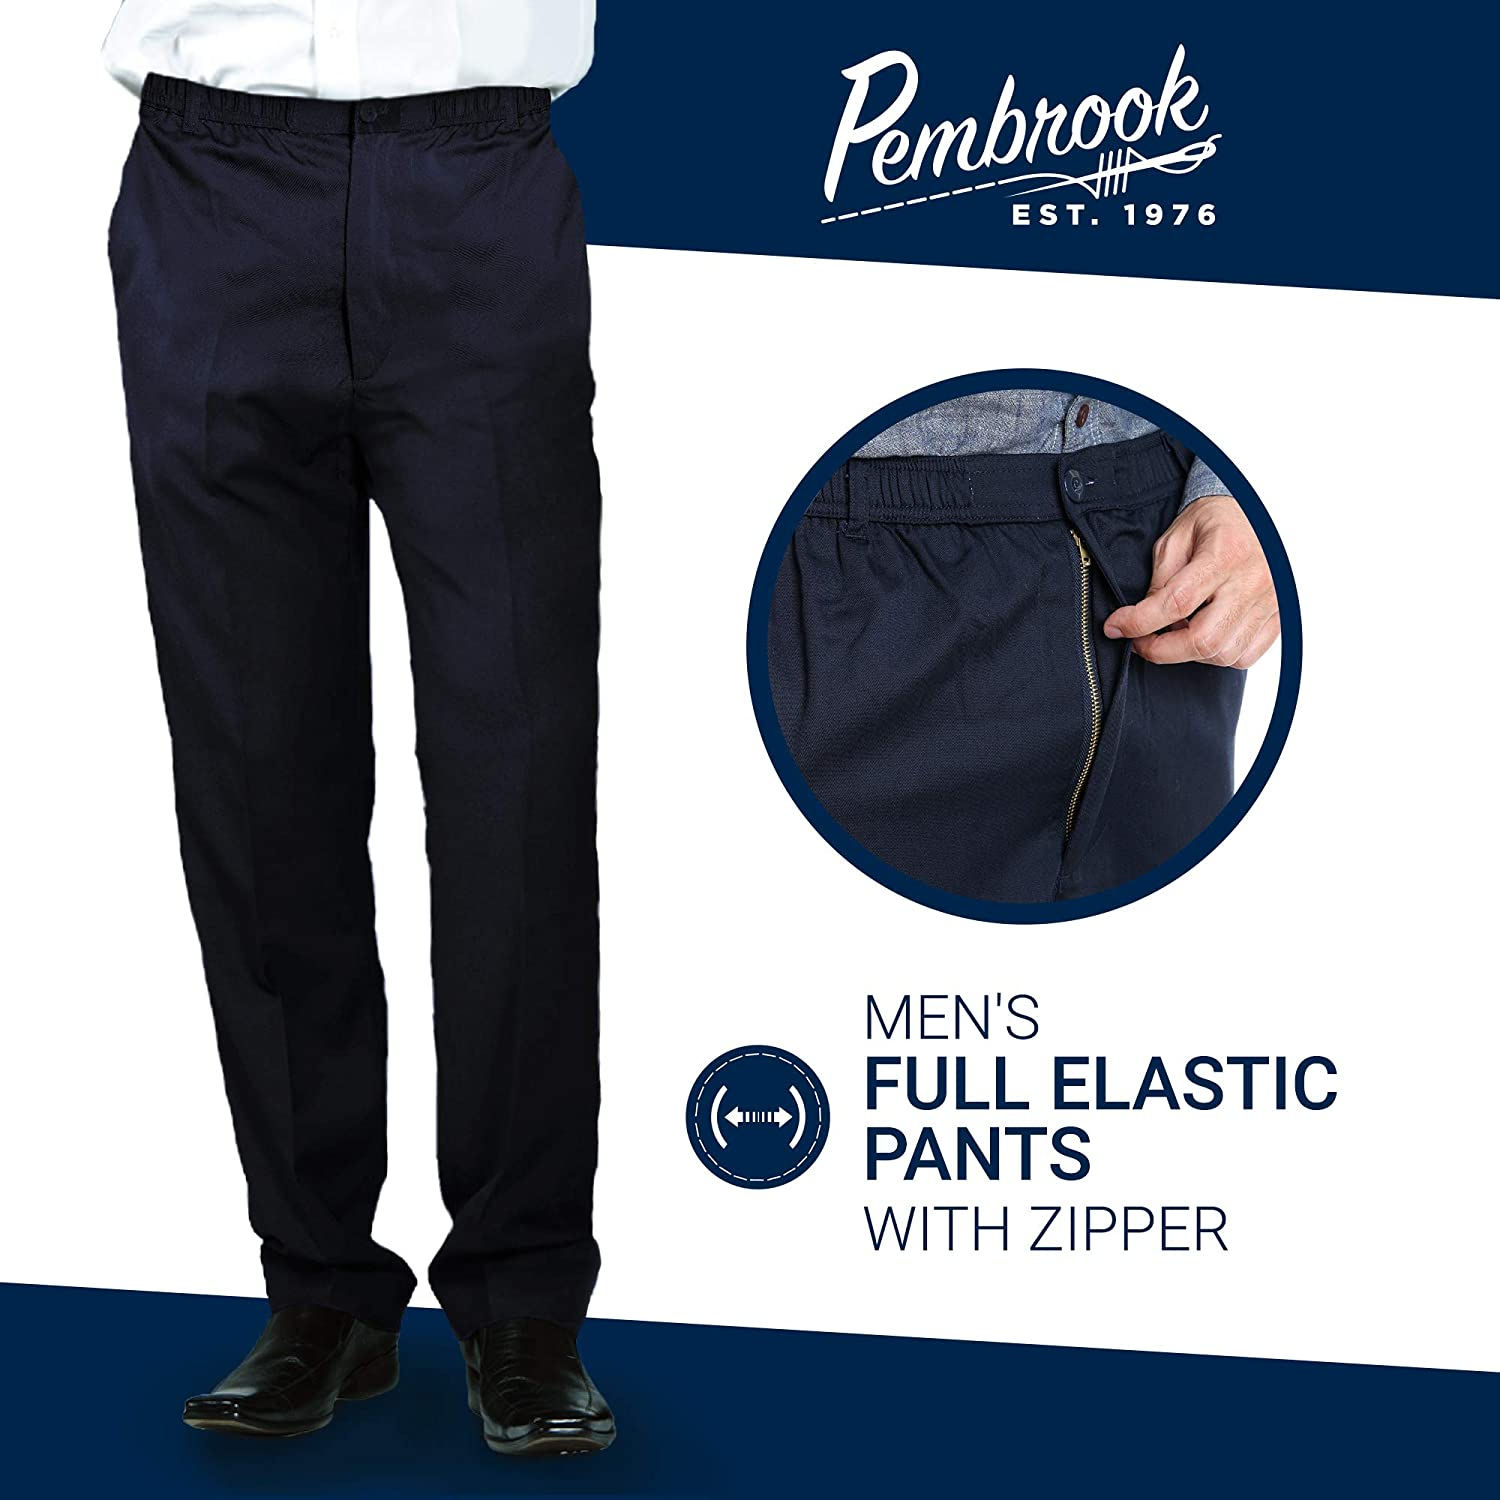 Pembrook Men's Elastic Waist Casual Pants